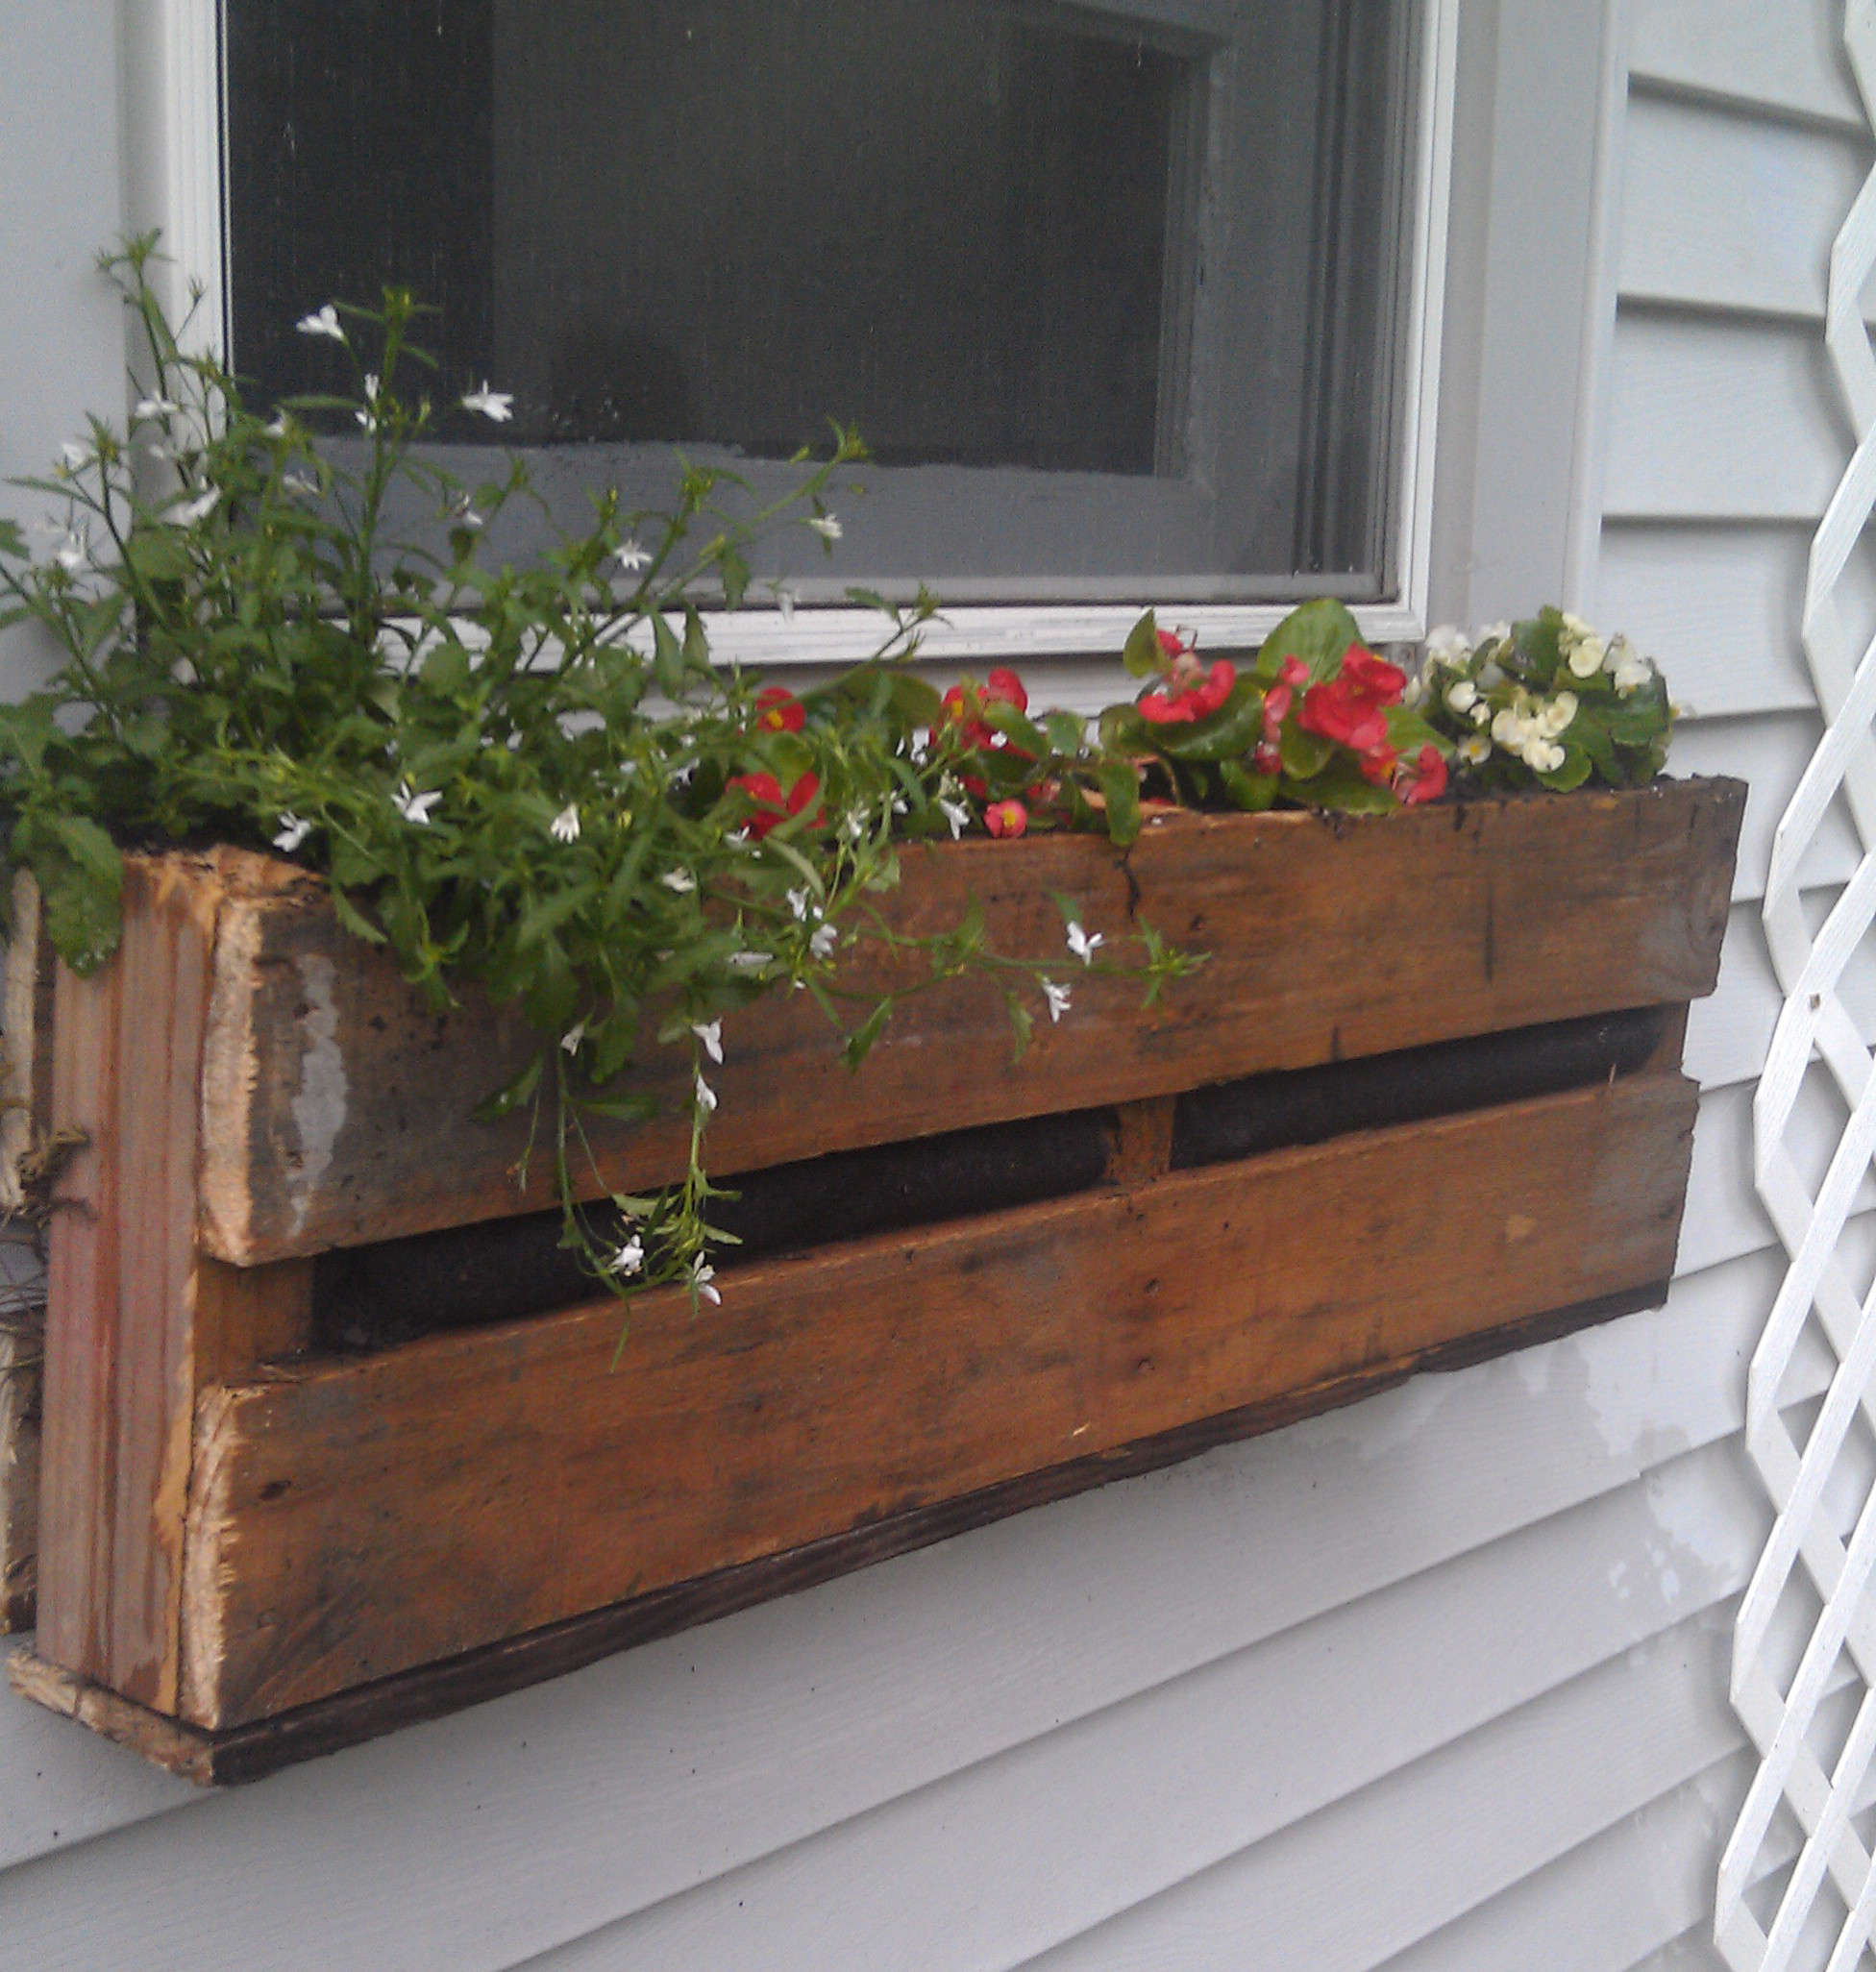 Best ideas about Window Flower Boxes DIY . Save or Pin Pallet Planter Now.